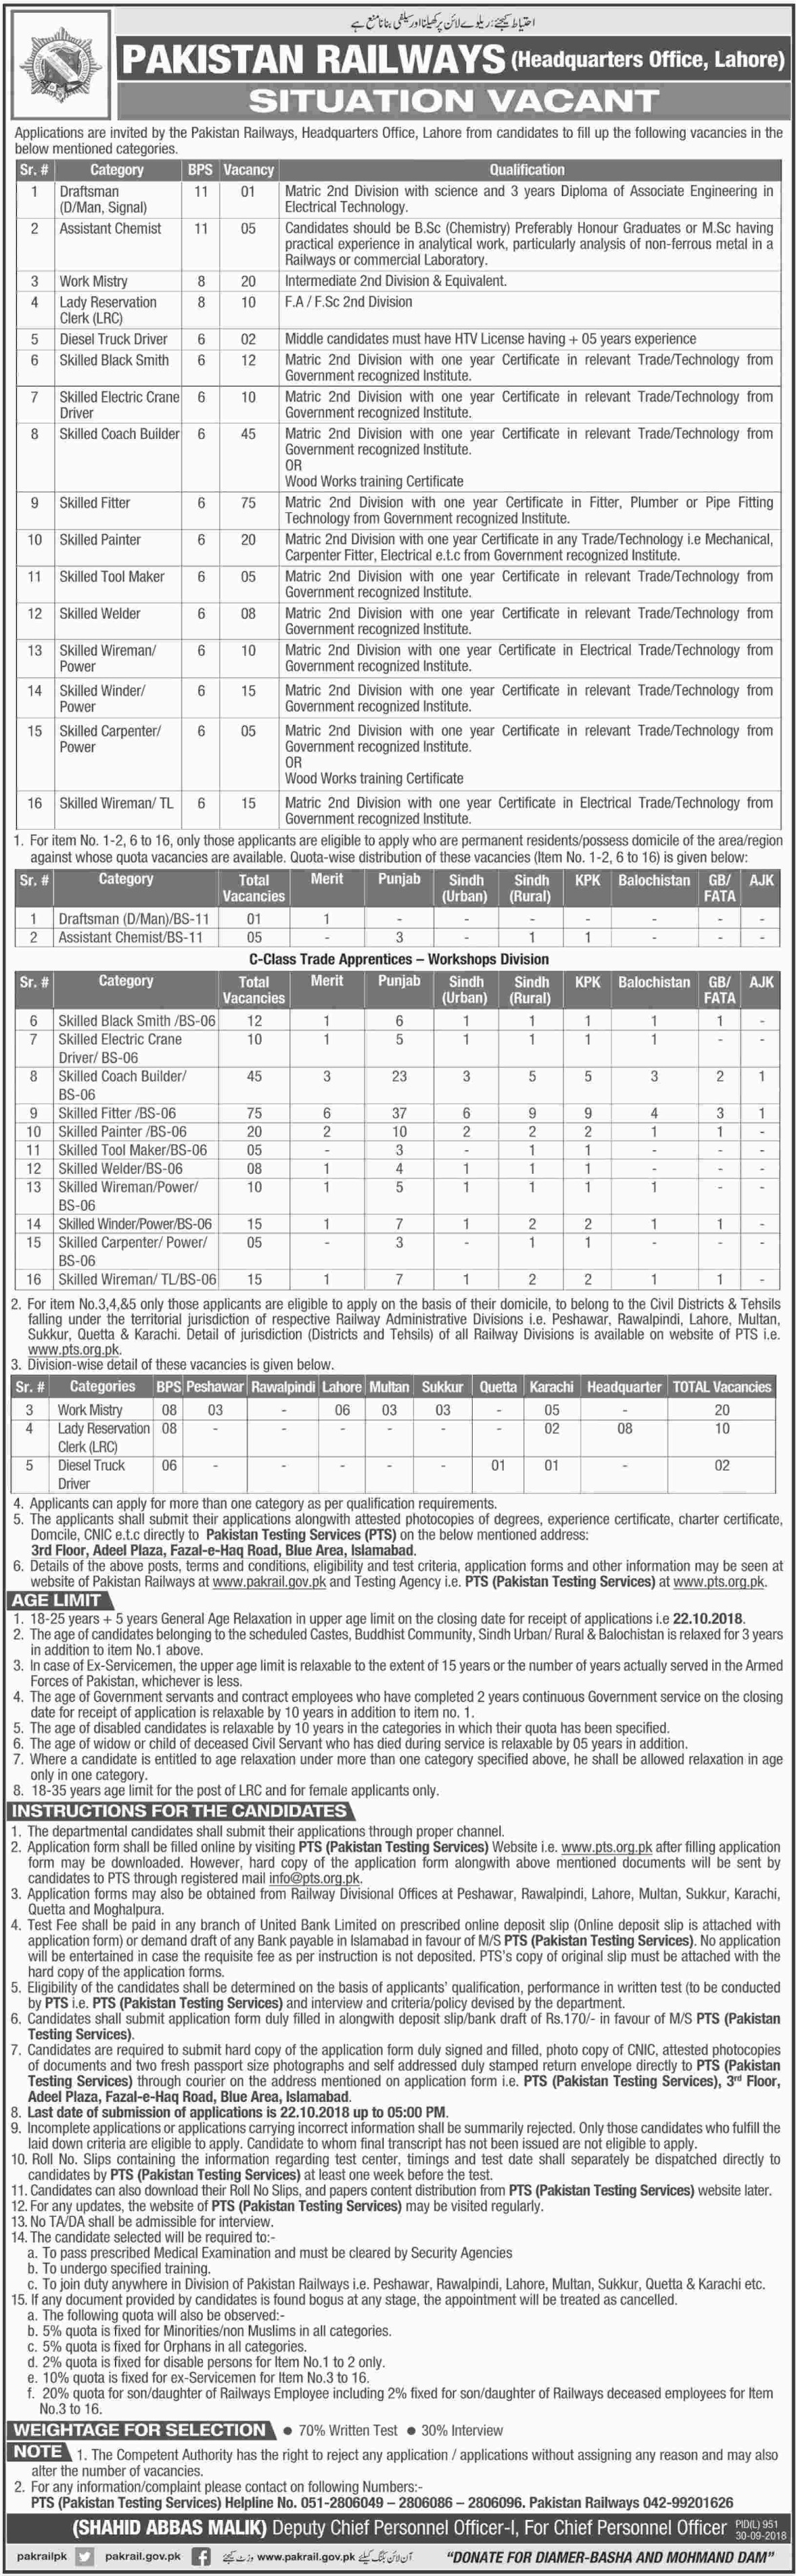 Pakistan Railways Headquarters Office Lahore Jobs 30 September 2018